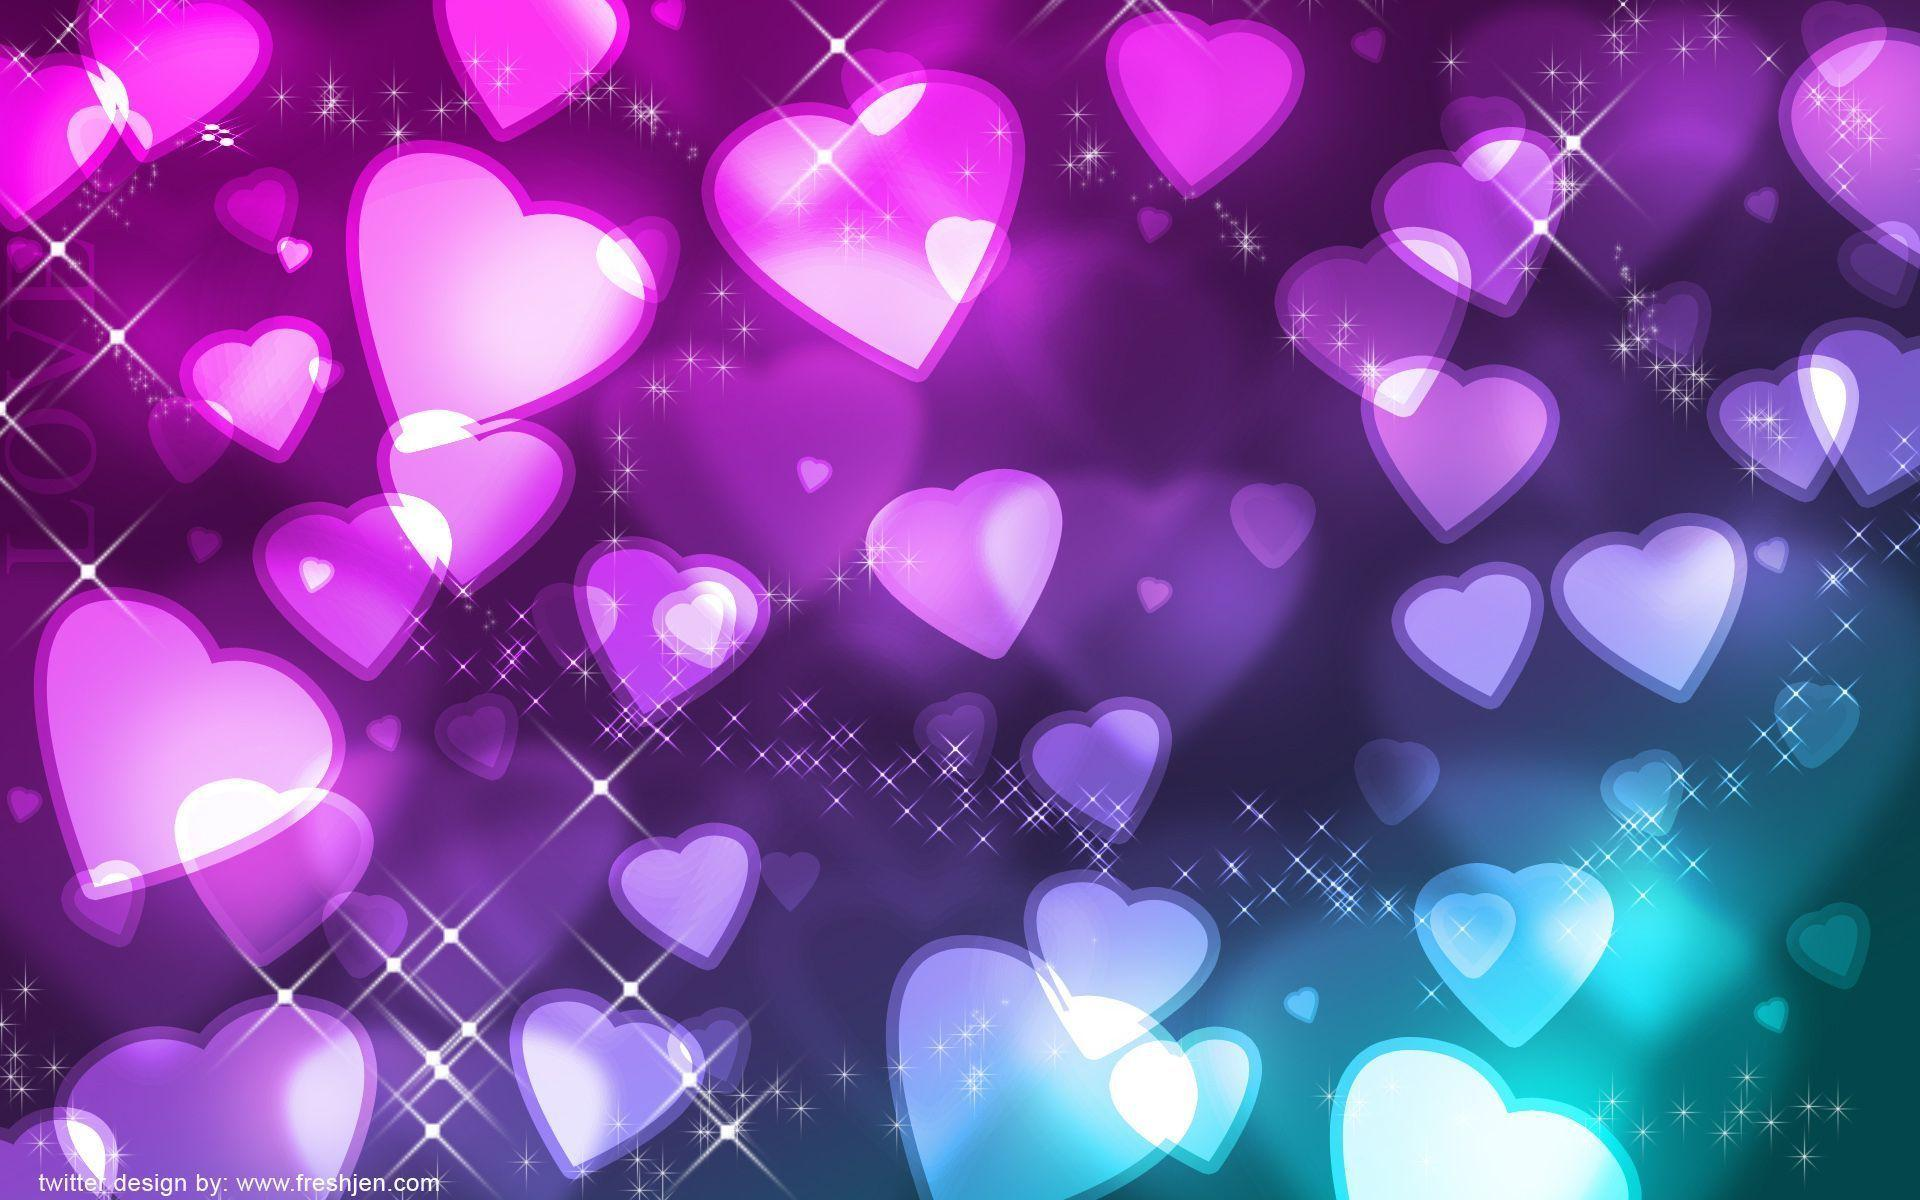 wallpapers purple hearts pink - photo #7